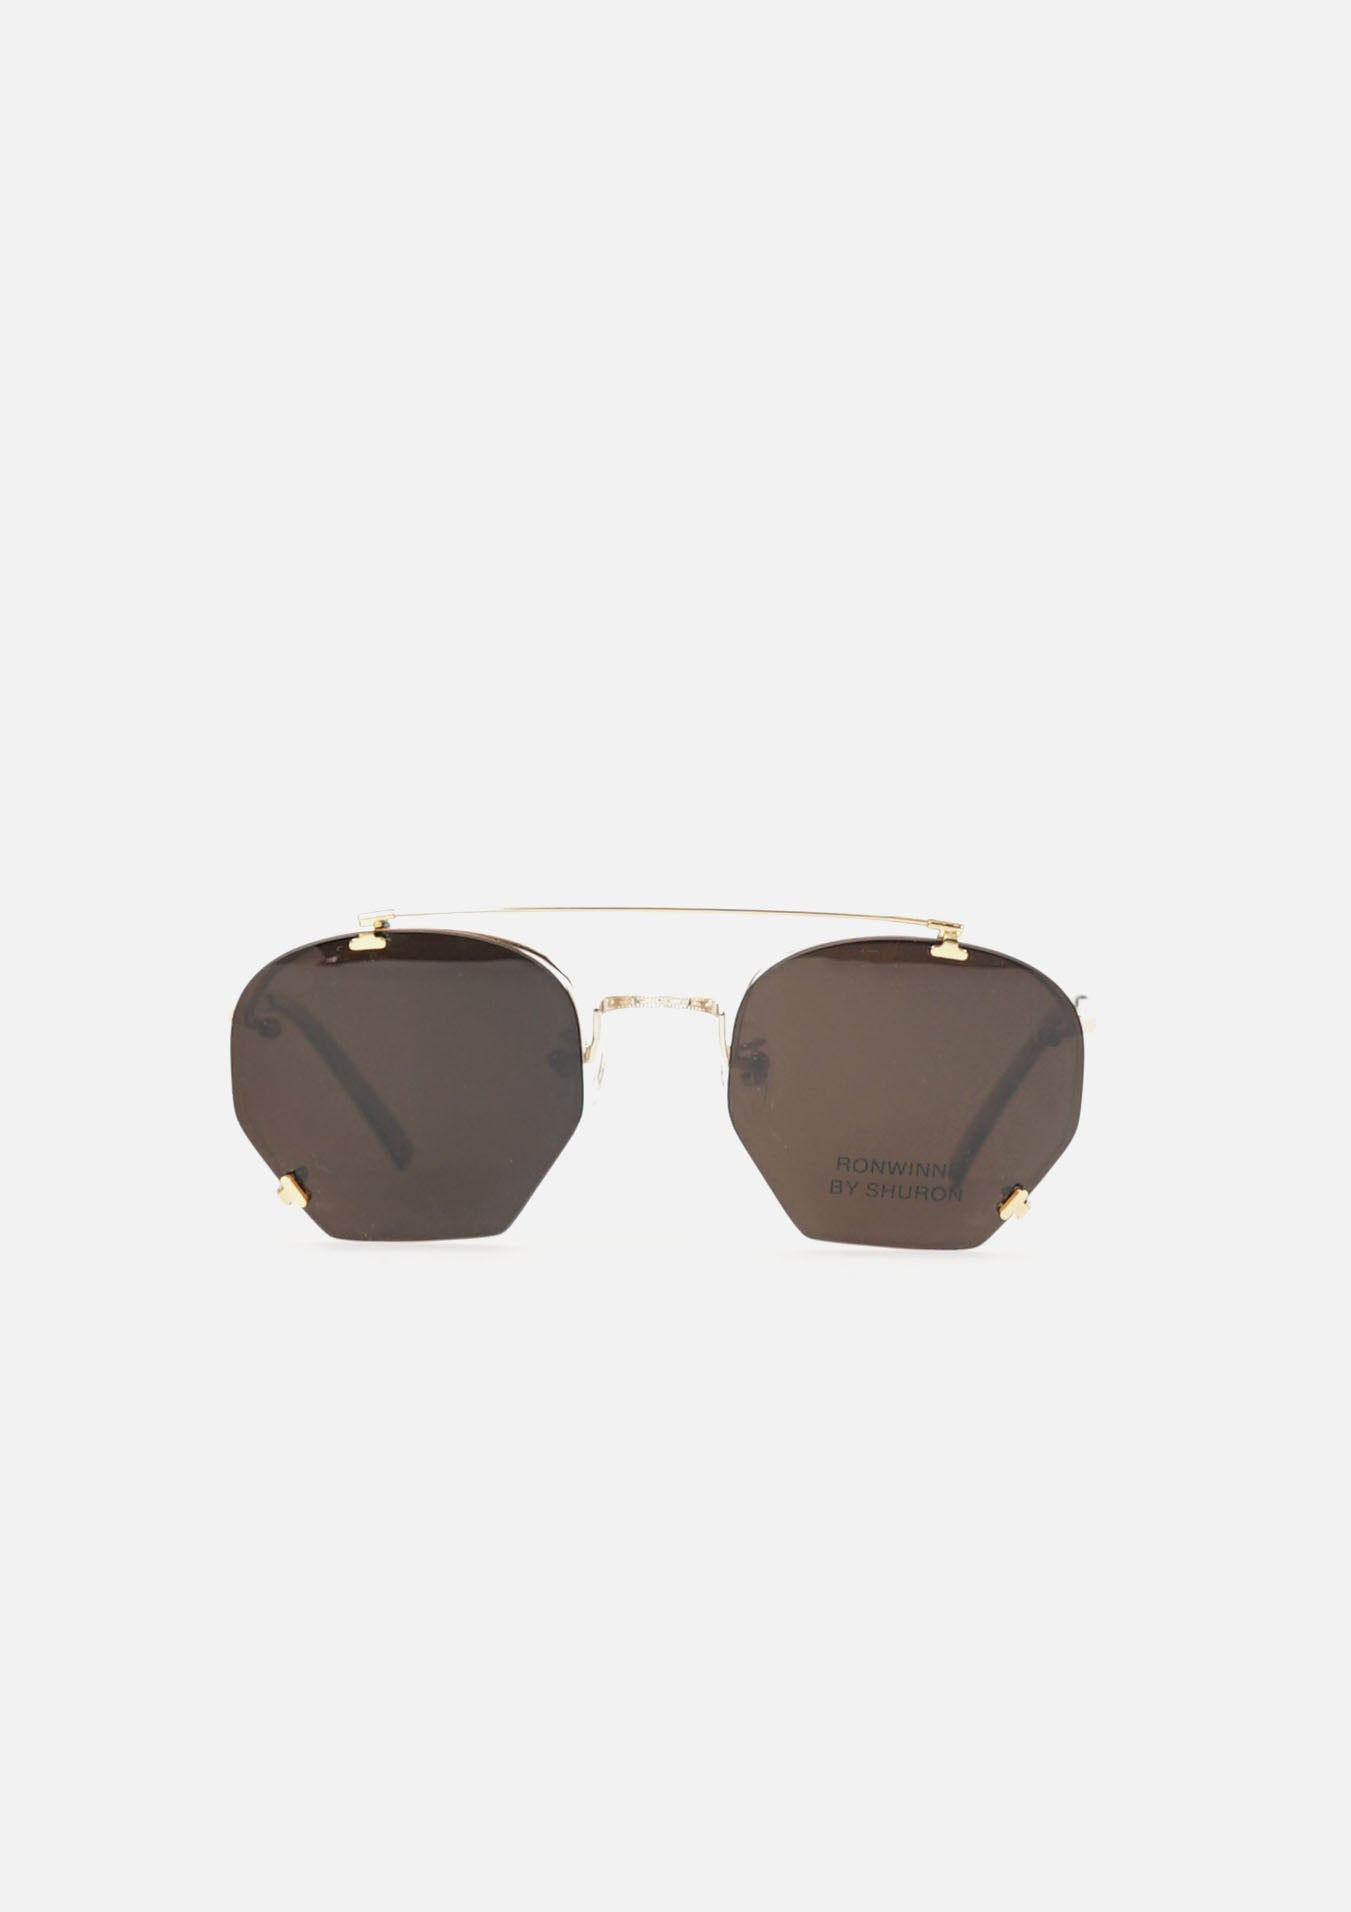 RONWINNE  Clip on Sunglasses  Gold